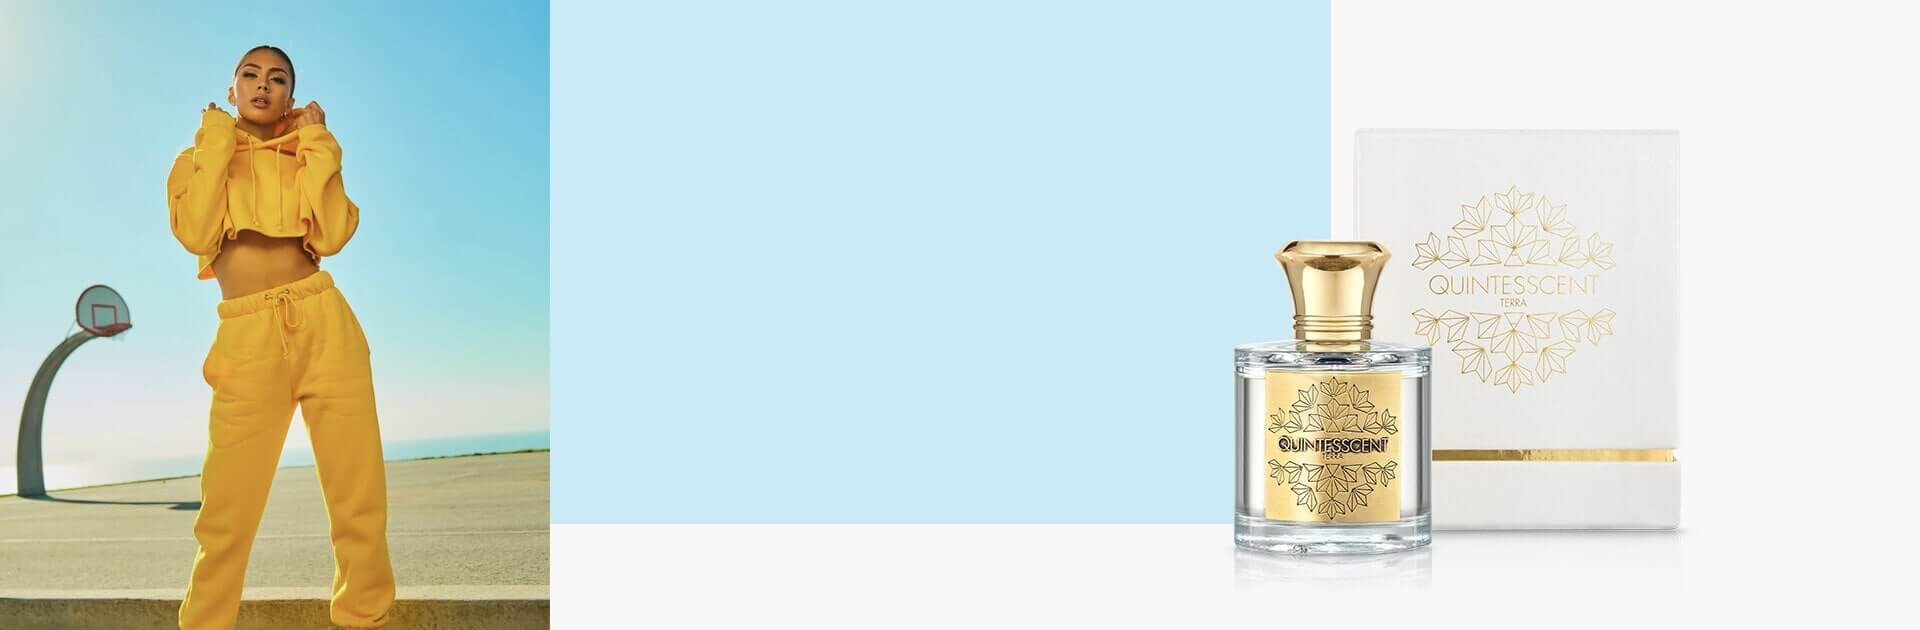 Quintesscent.com | Terra Perfume | The best women perfume | Perfume